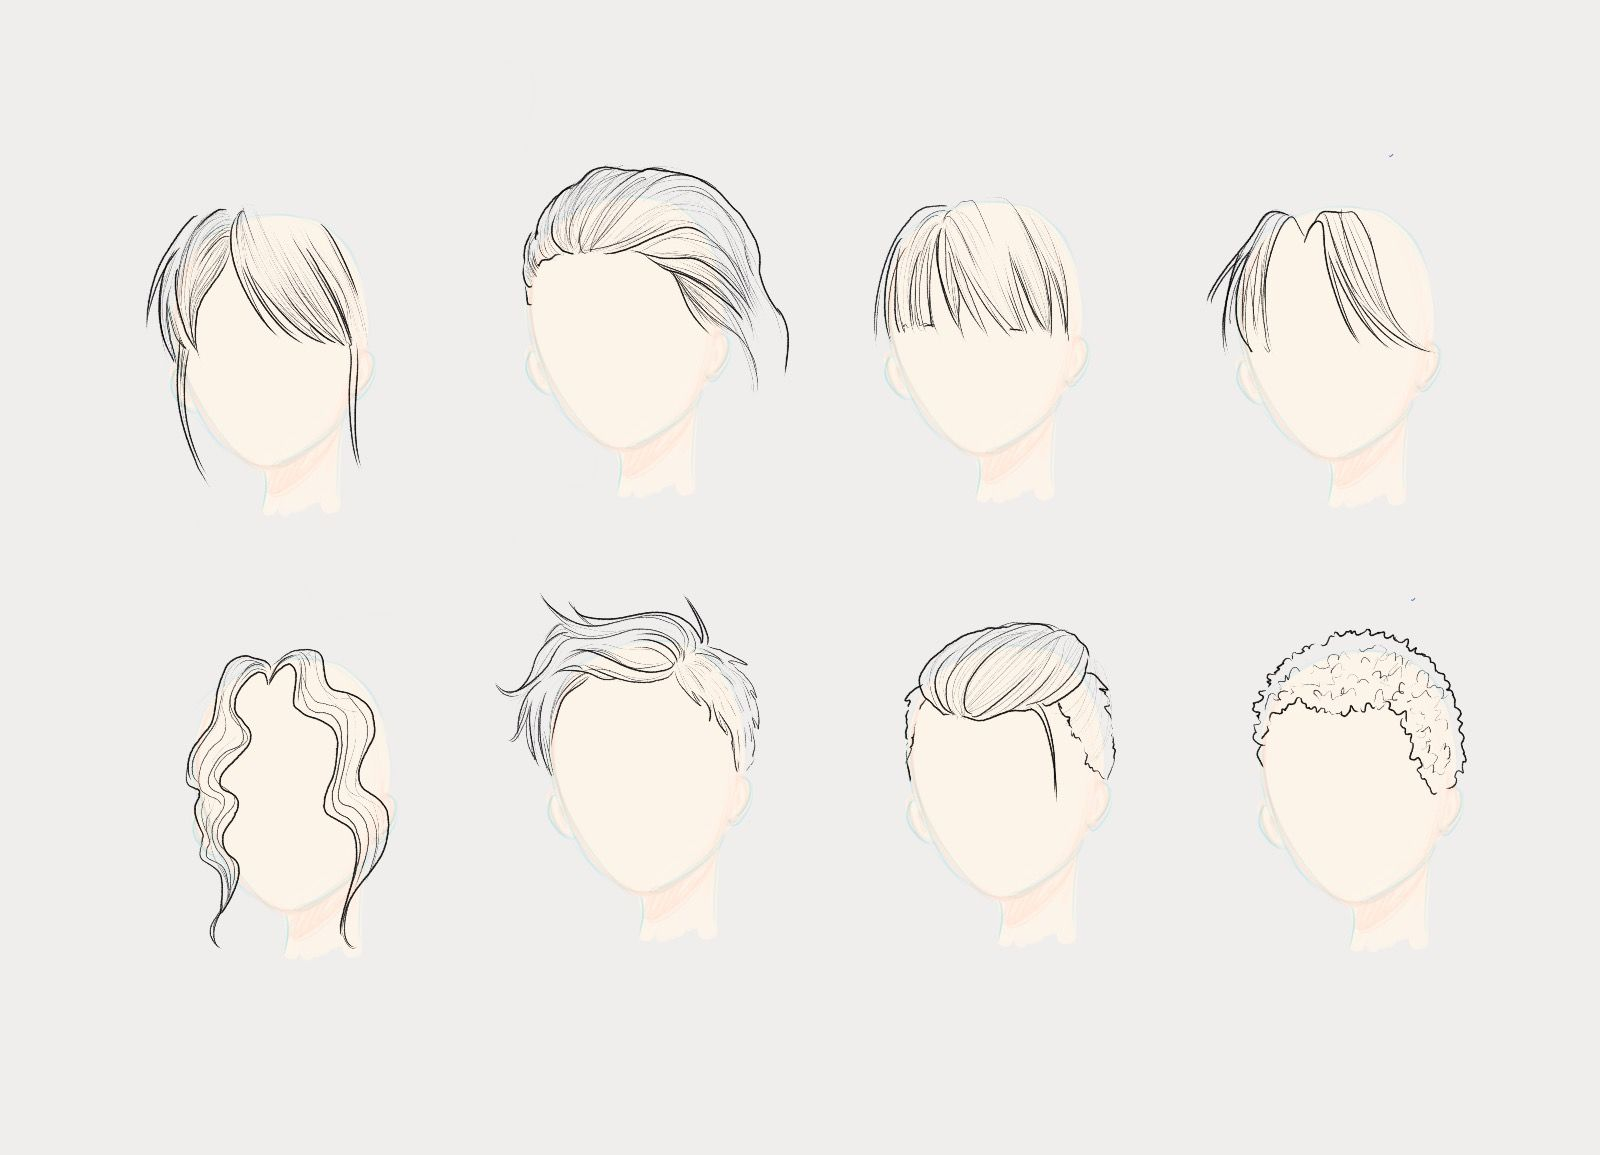 Pin By Katishere On Art References Face Sketch Sketches Sketch Head